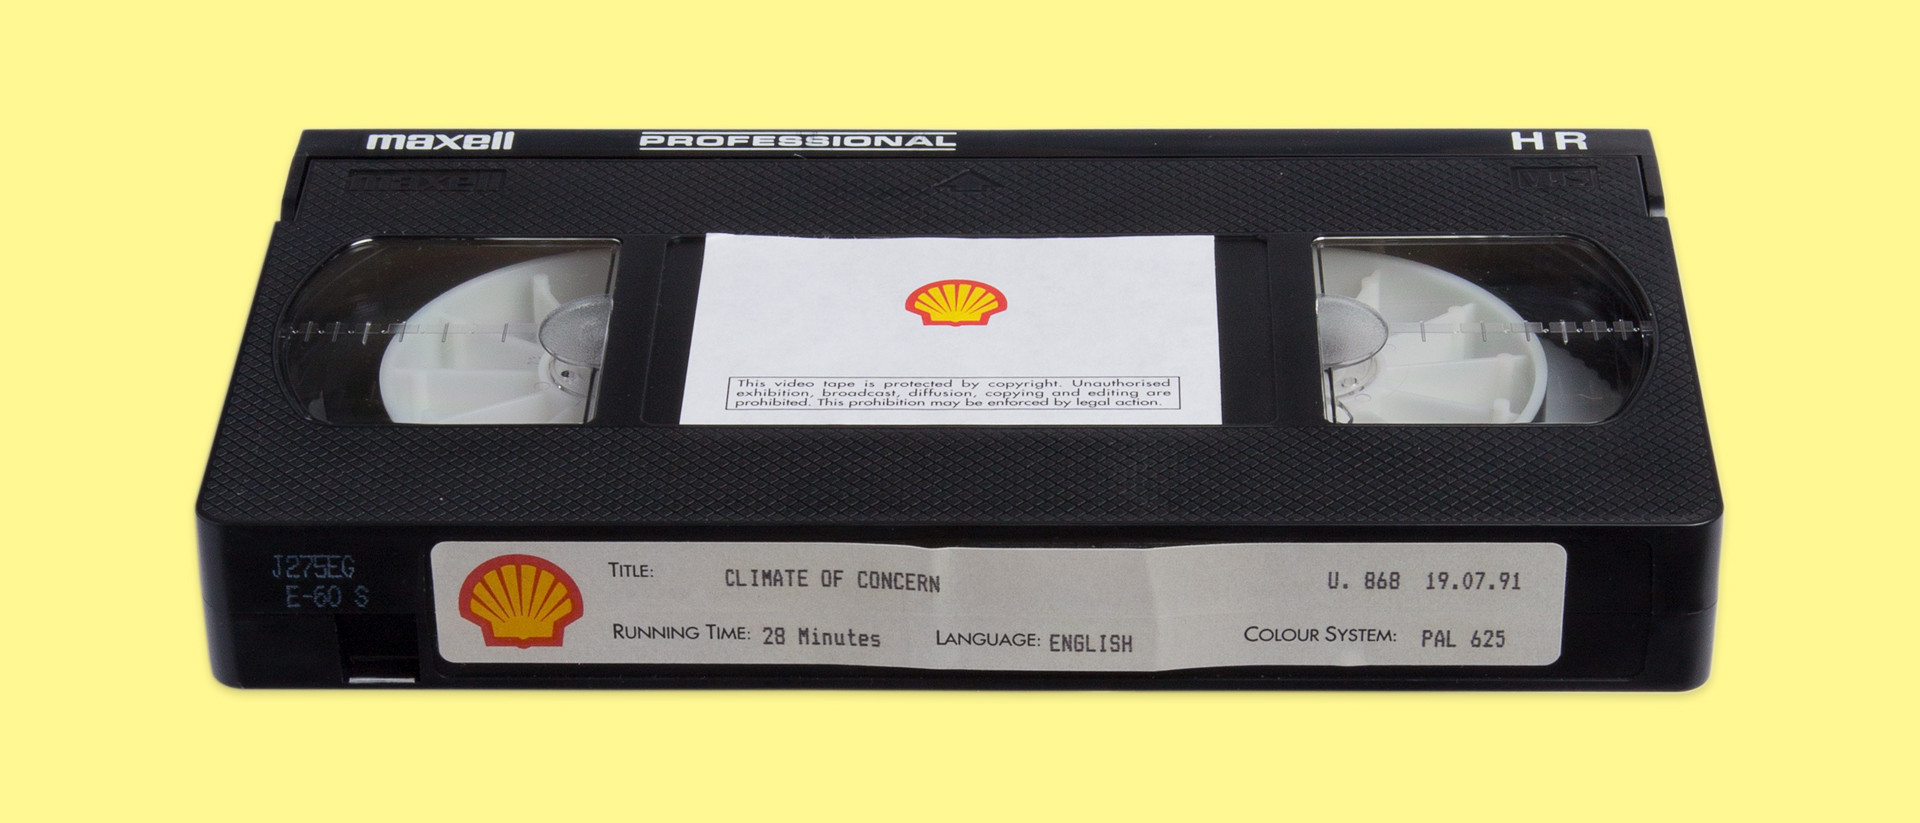 Exhibition Shell Quotes : Shell made a film about climate change in then neglected to